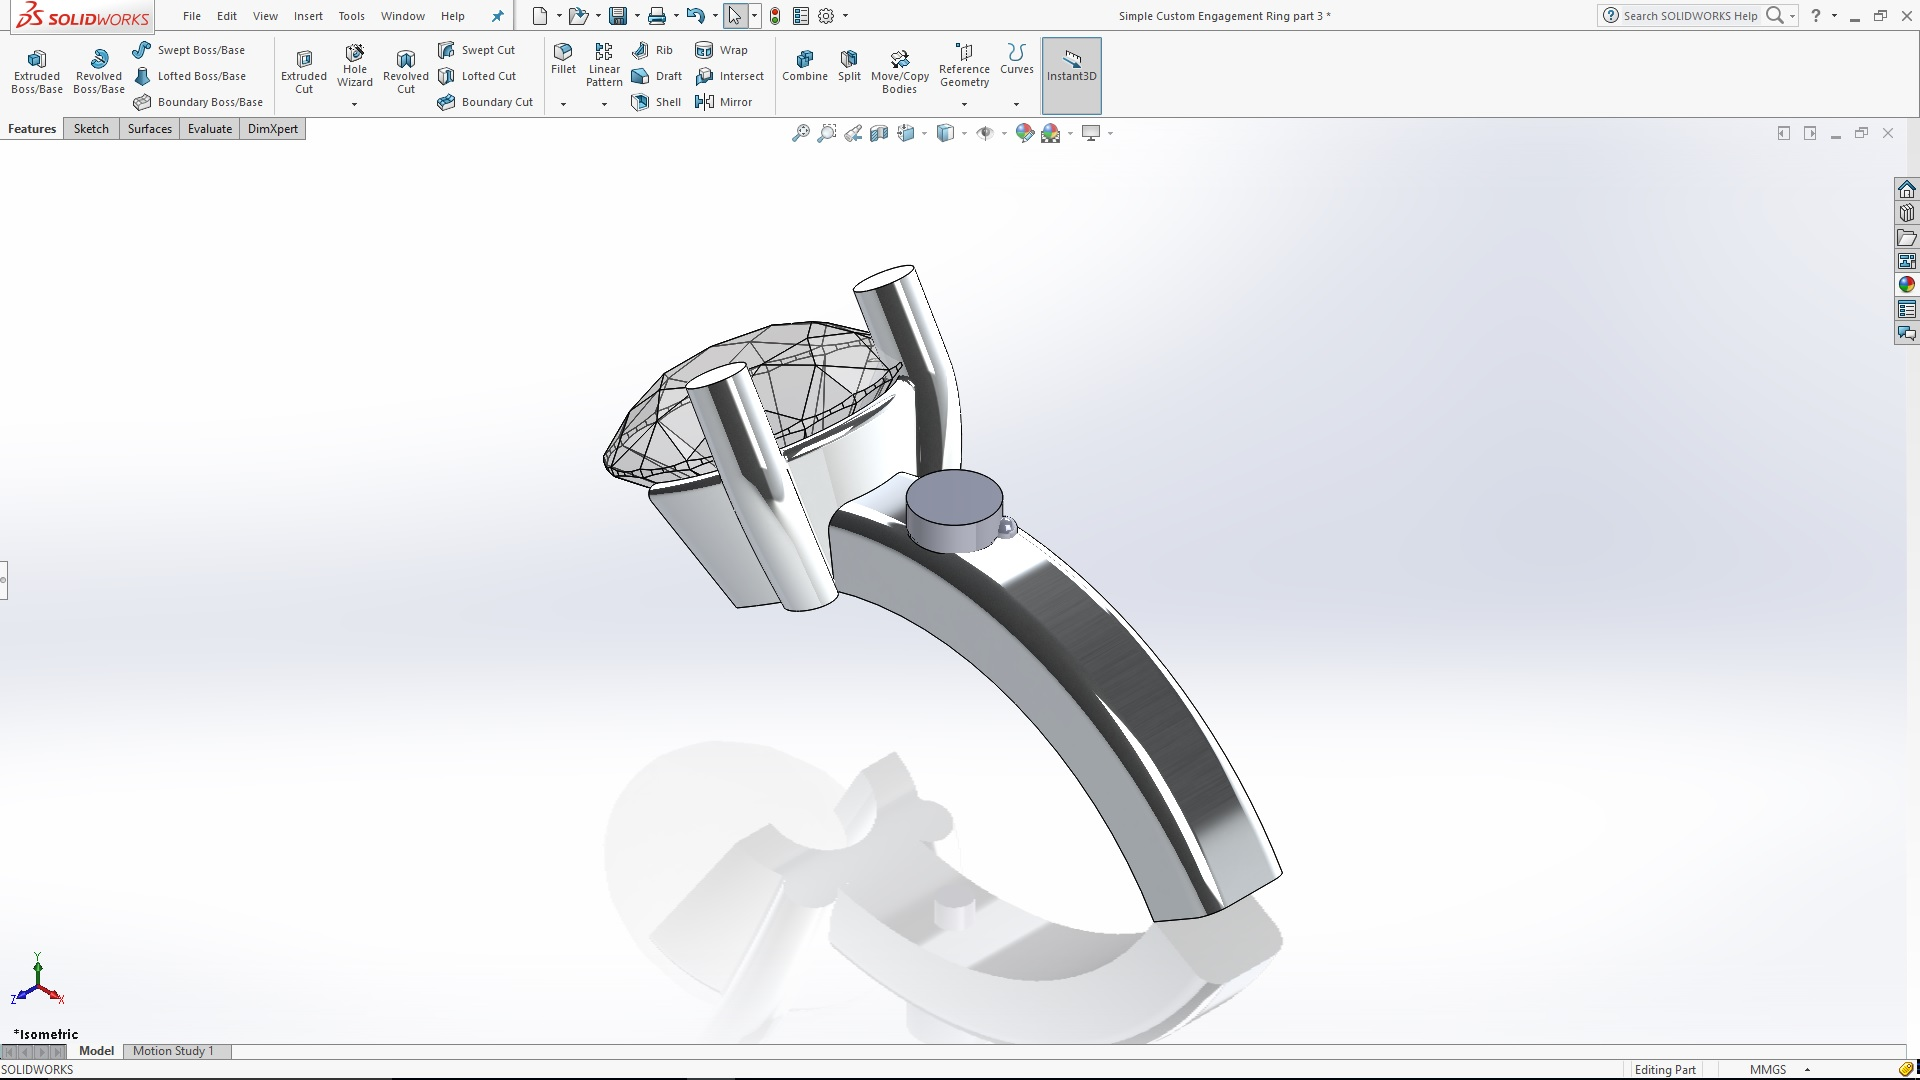 Creating a custom engagement ring part 3 ccuart Images